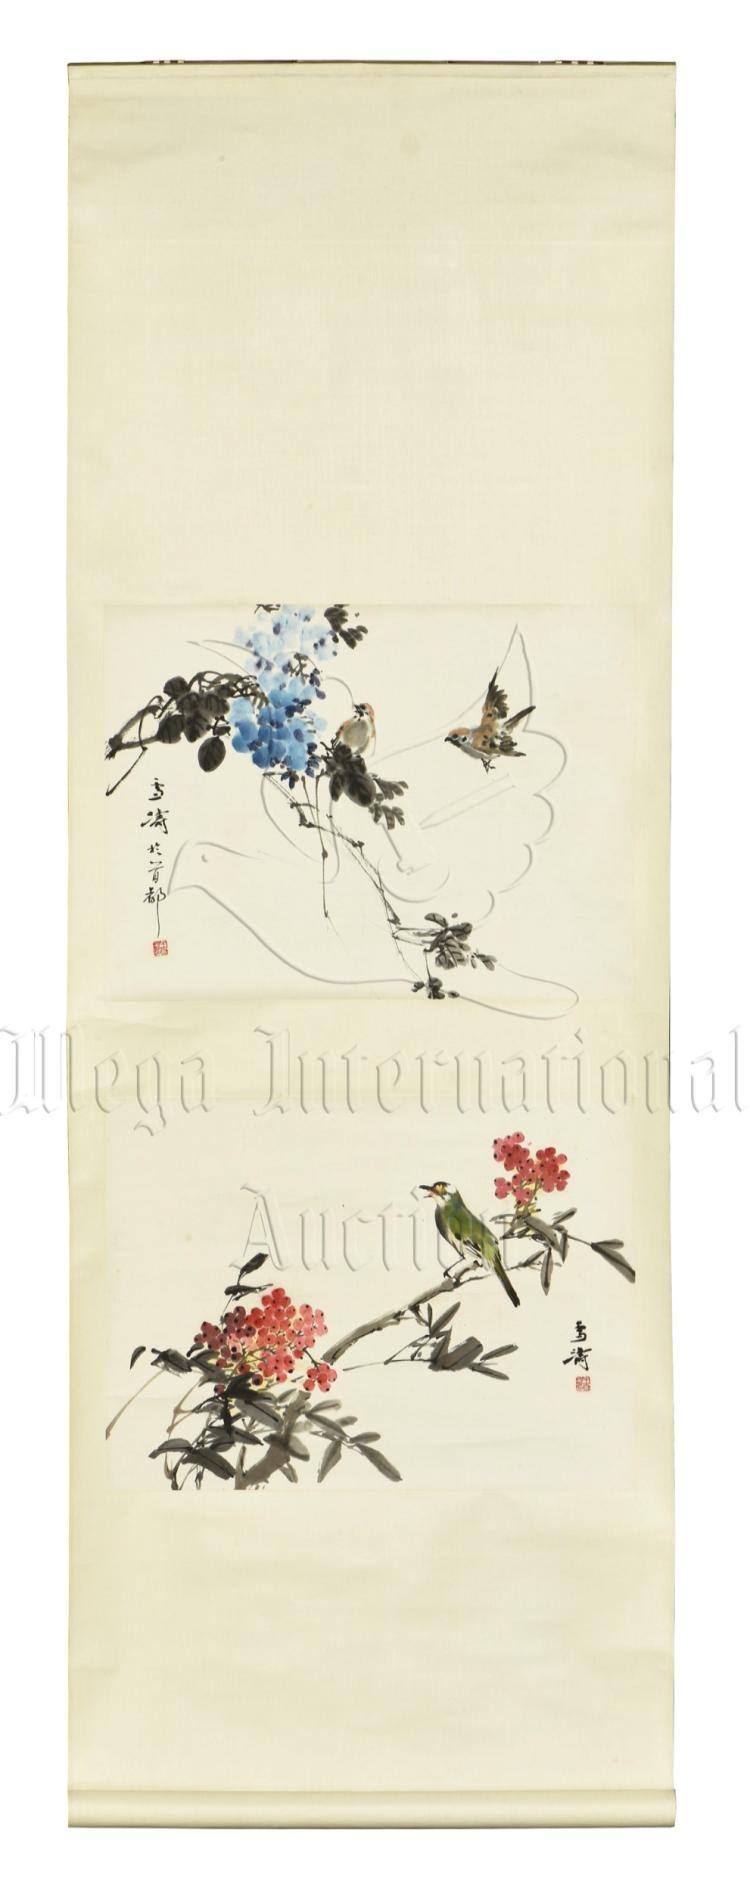 WANG XUETAO: INK AND COLOR ON PAPER 'FLOWERS AND BIRDS' PAINTING